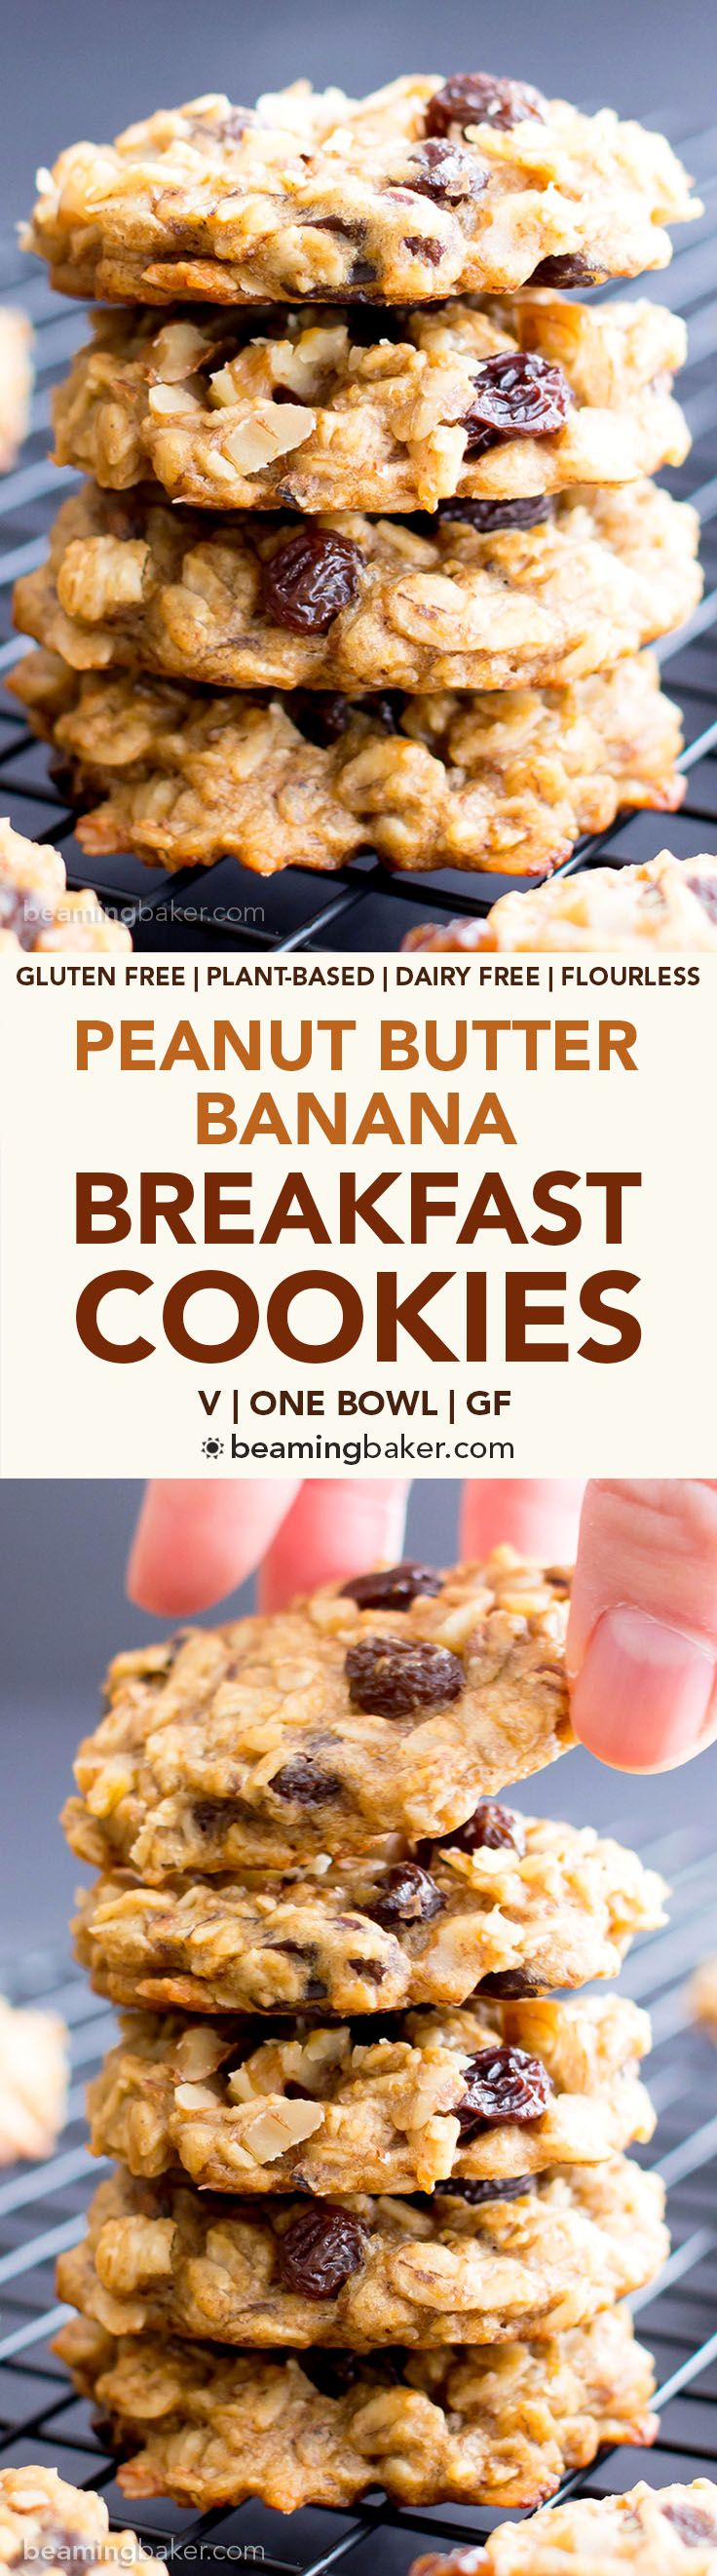 Easy Vegan Peanut Butter Banana Breakfast Cookies (Gluten Free, V, DF, One Bowl) - Beaming Baker